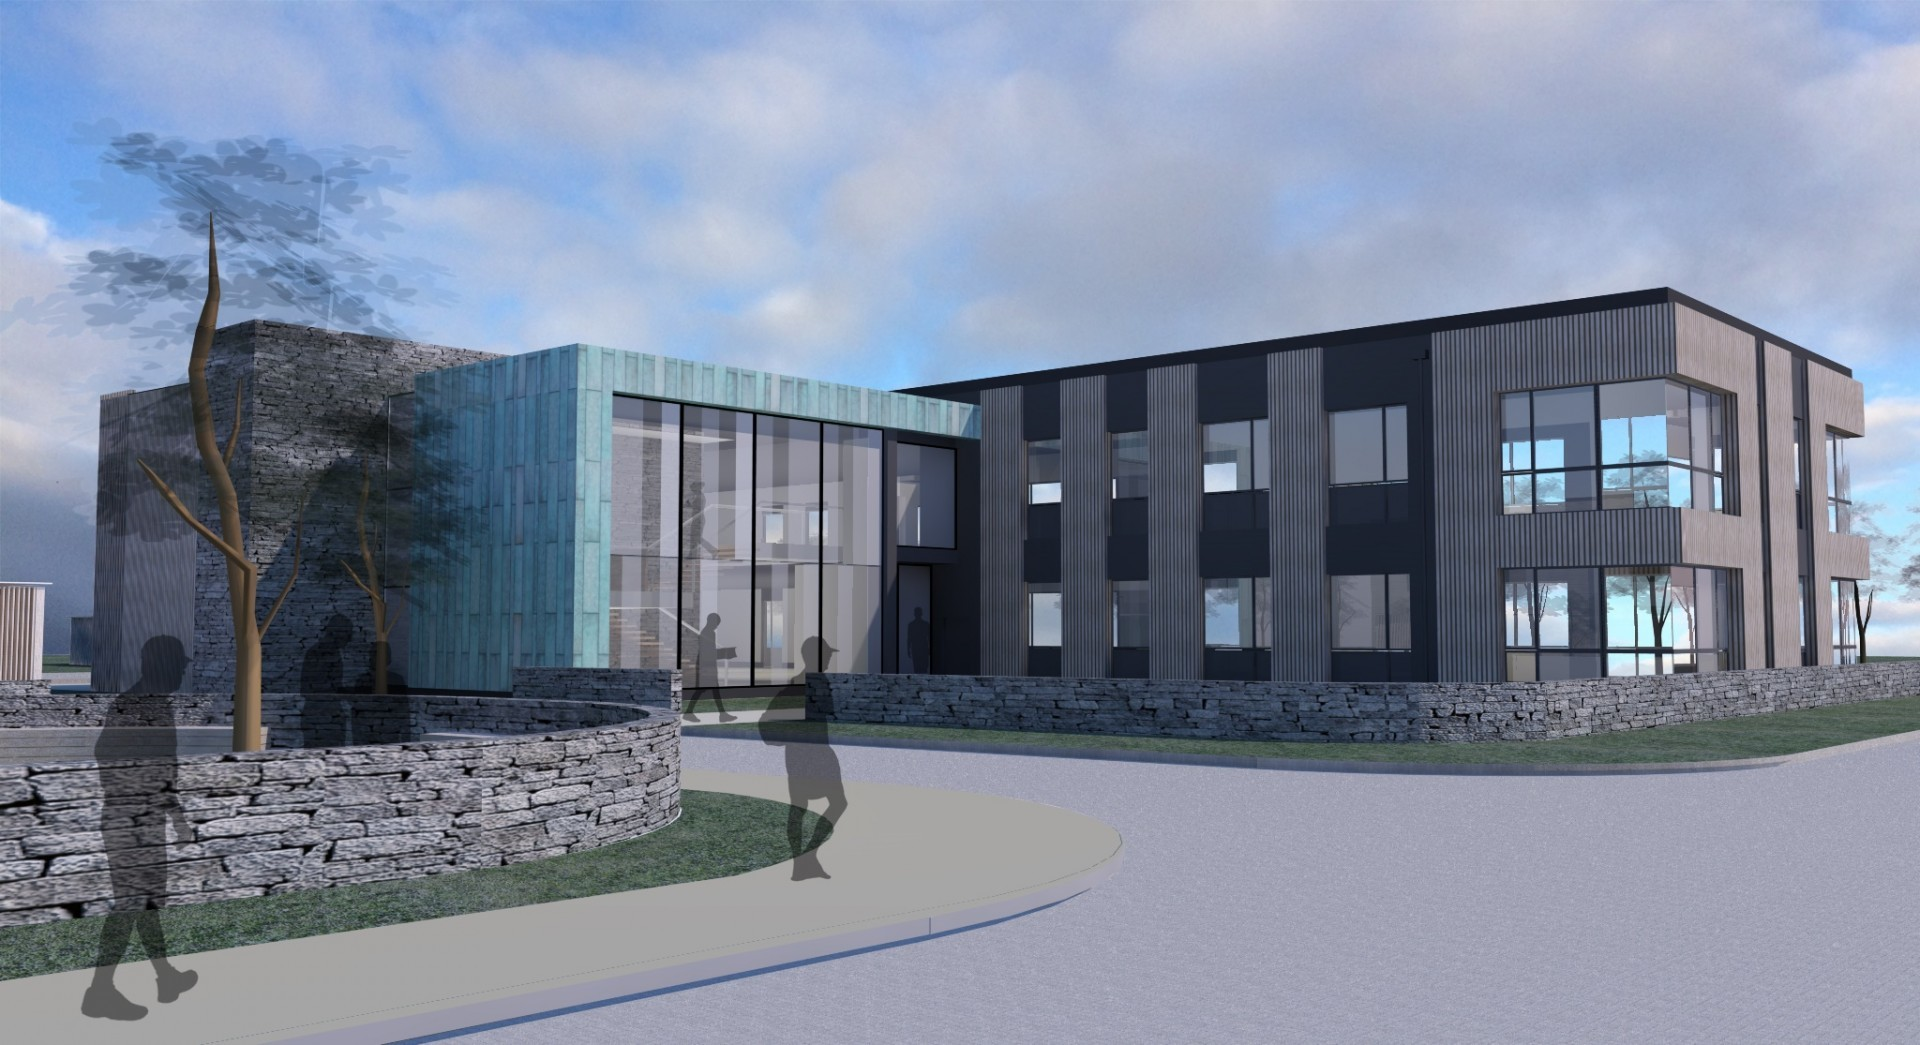 The new building – to be called Solasta House - will be a twin to the existing Aurora House, which was completed two years ago.